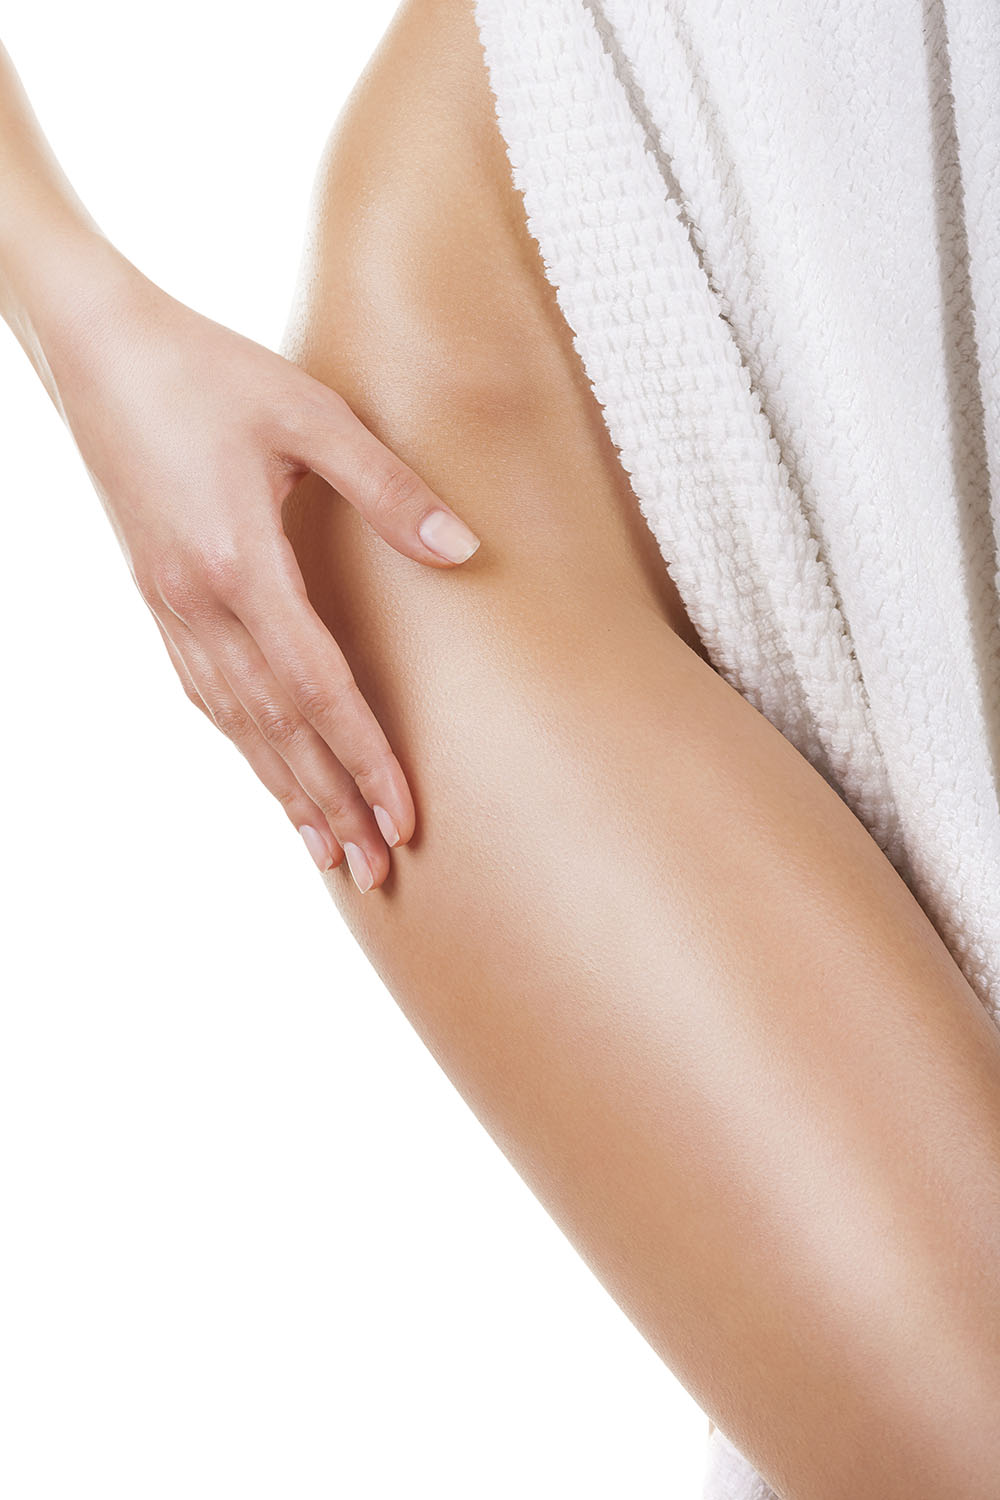 What is radiofrequency and how does it work for skin tightening and lifting?